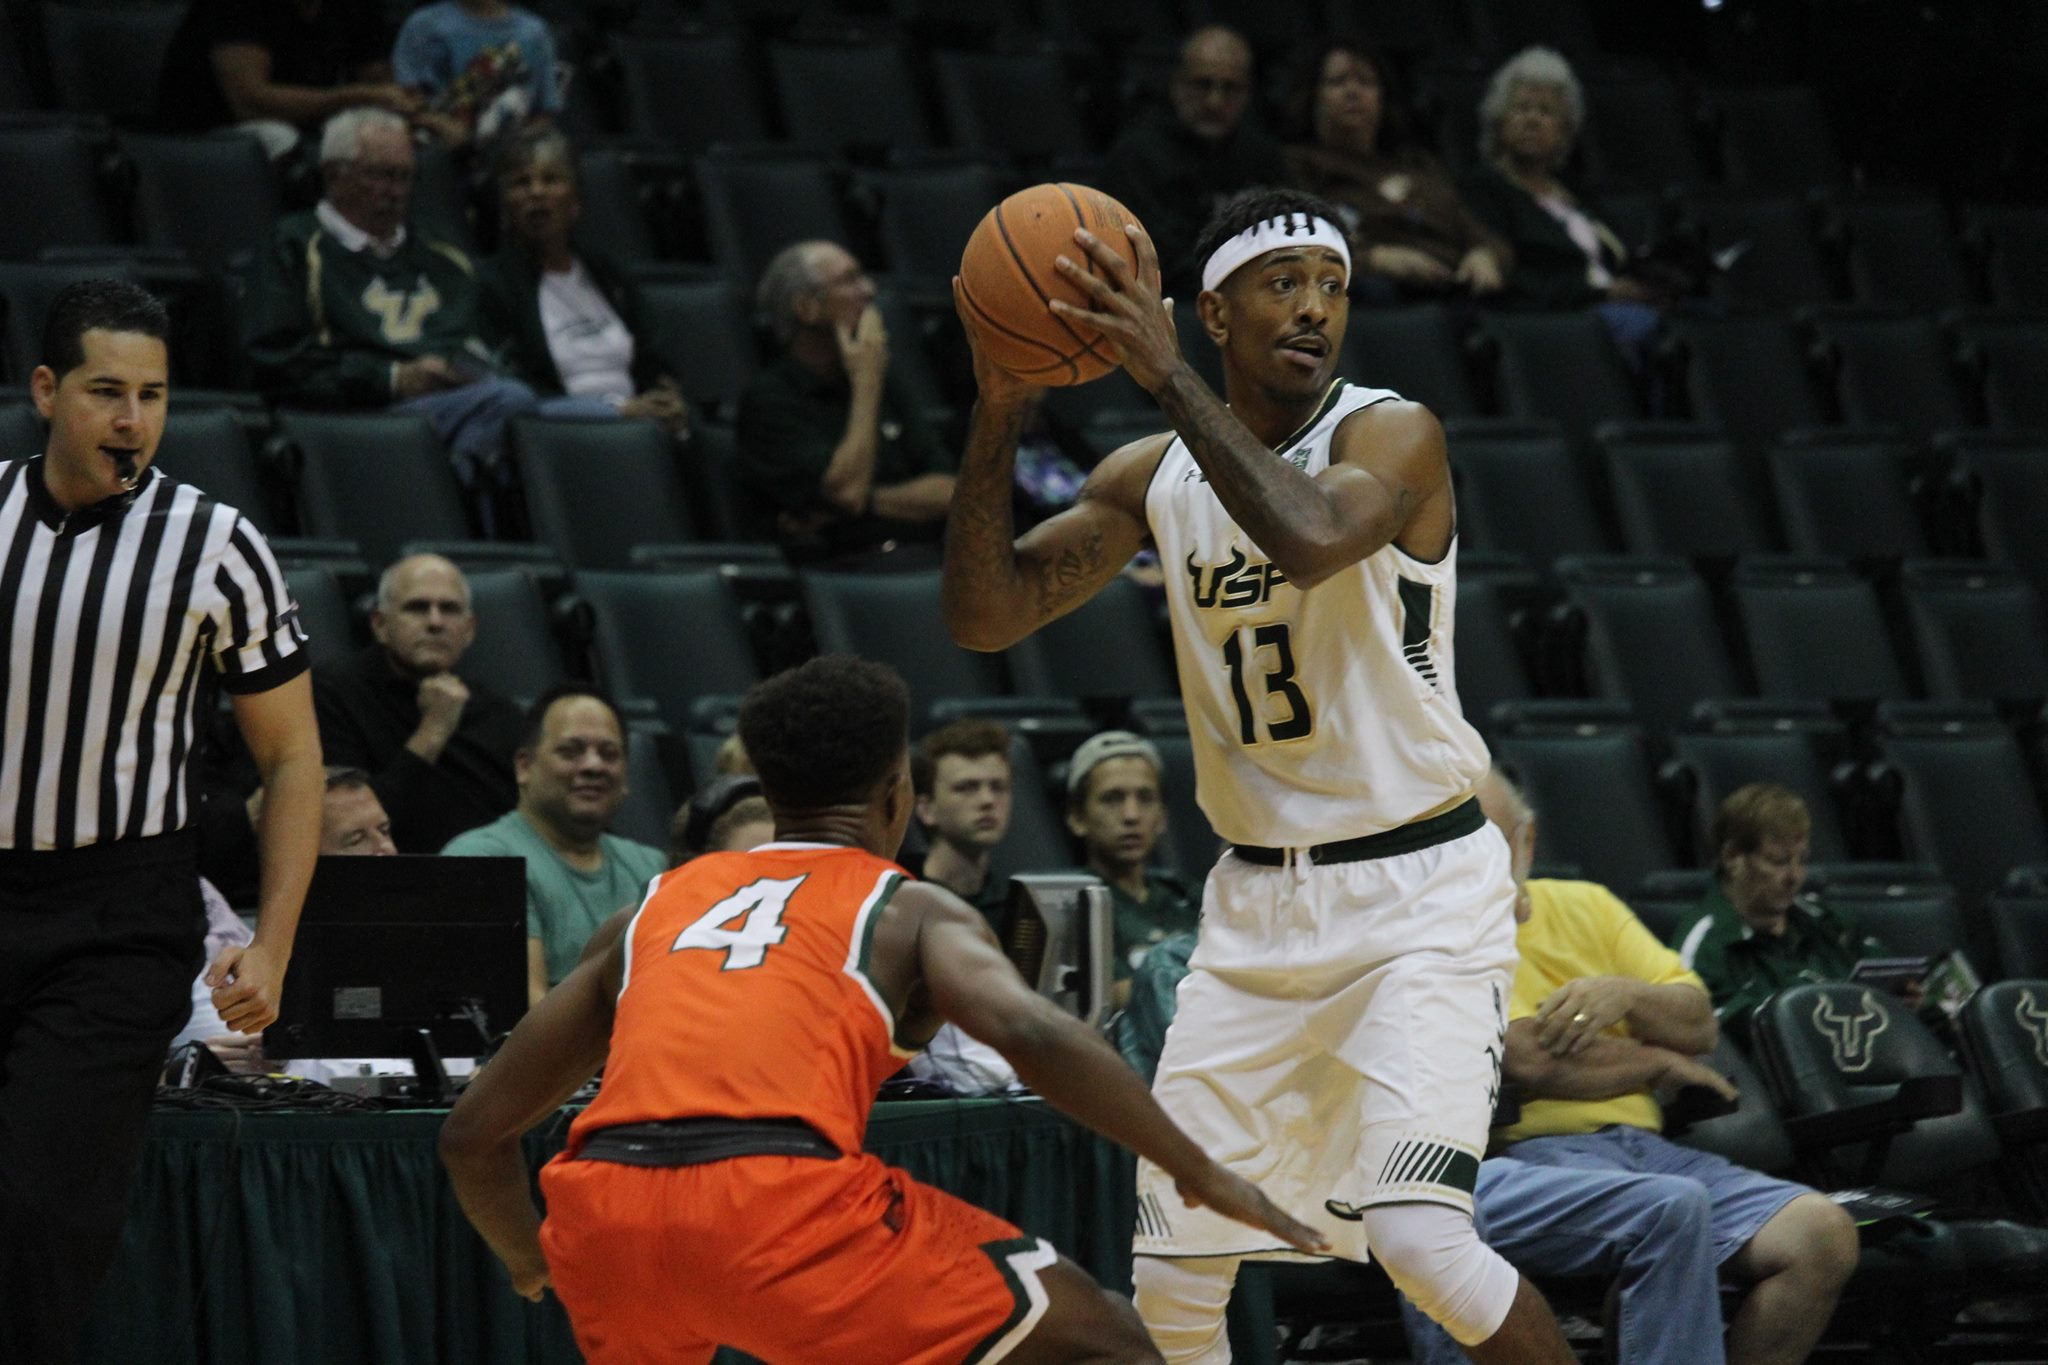 Bulls fall short in AAC Championship Tournament